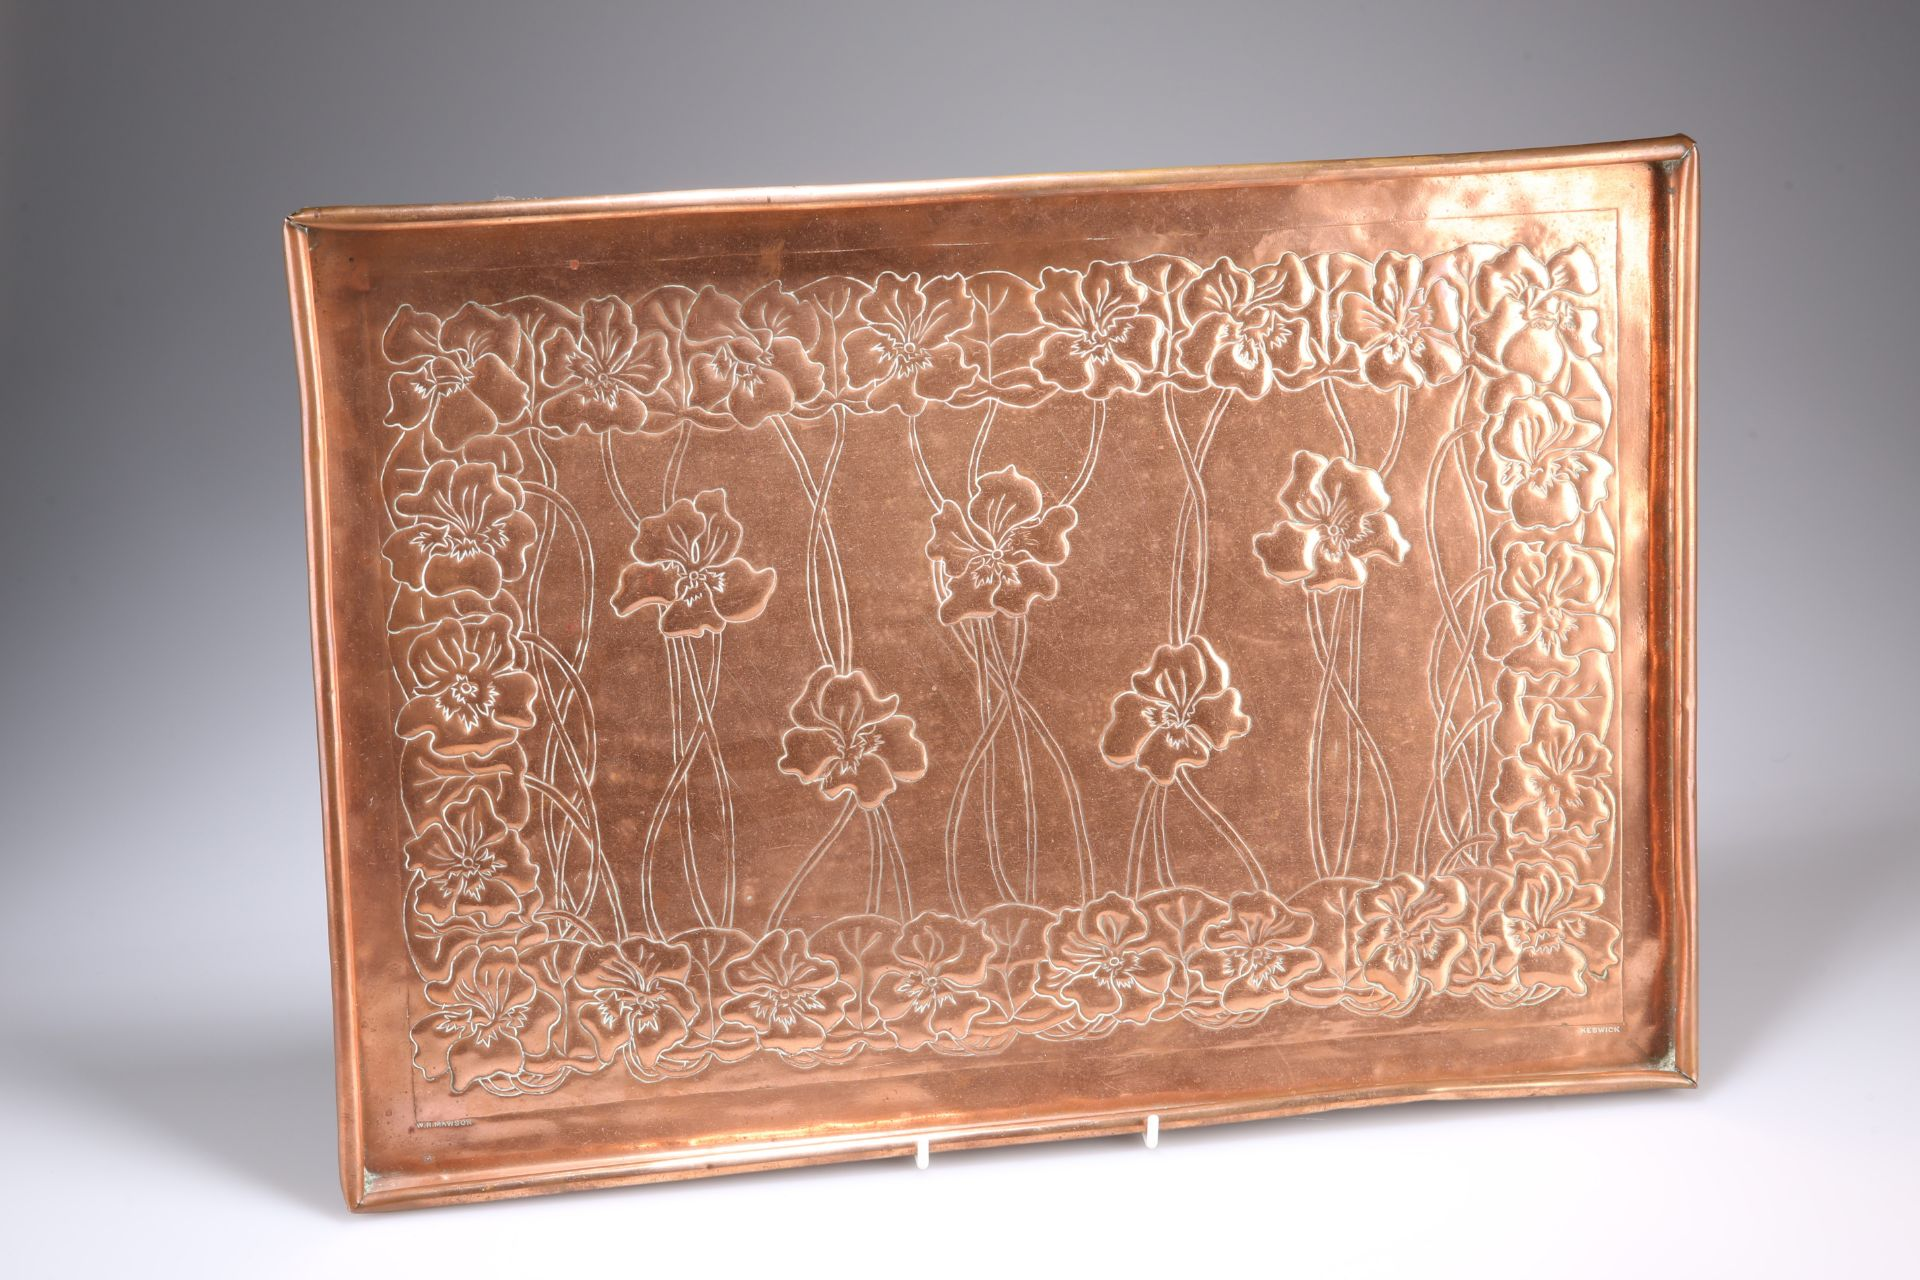 WILLIAM HENRY MAWSON FOR THE KESWICK SCHOOL OF INDUSTRIAL ARTS AN ARTS AND CRAFTS COPPER TRAY,